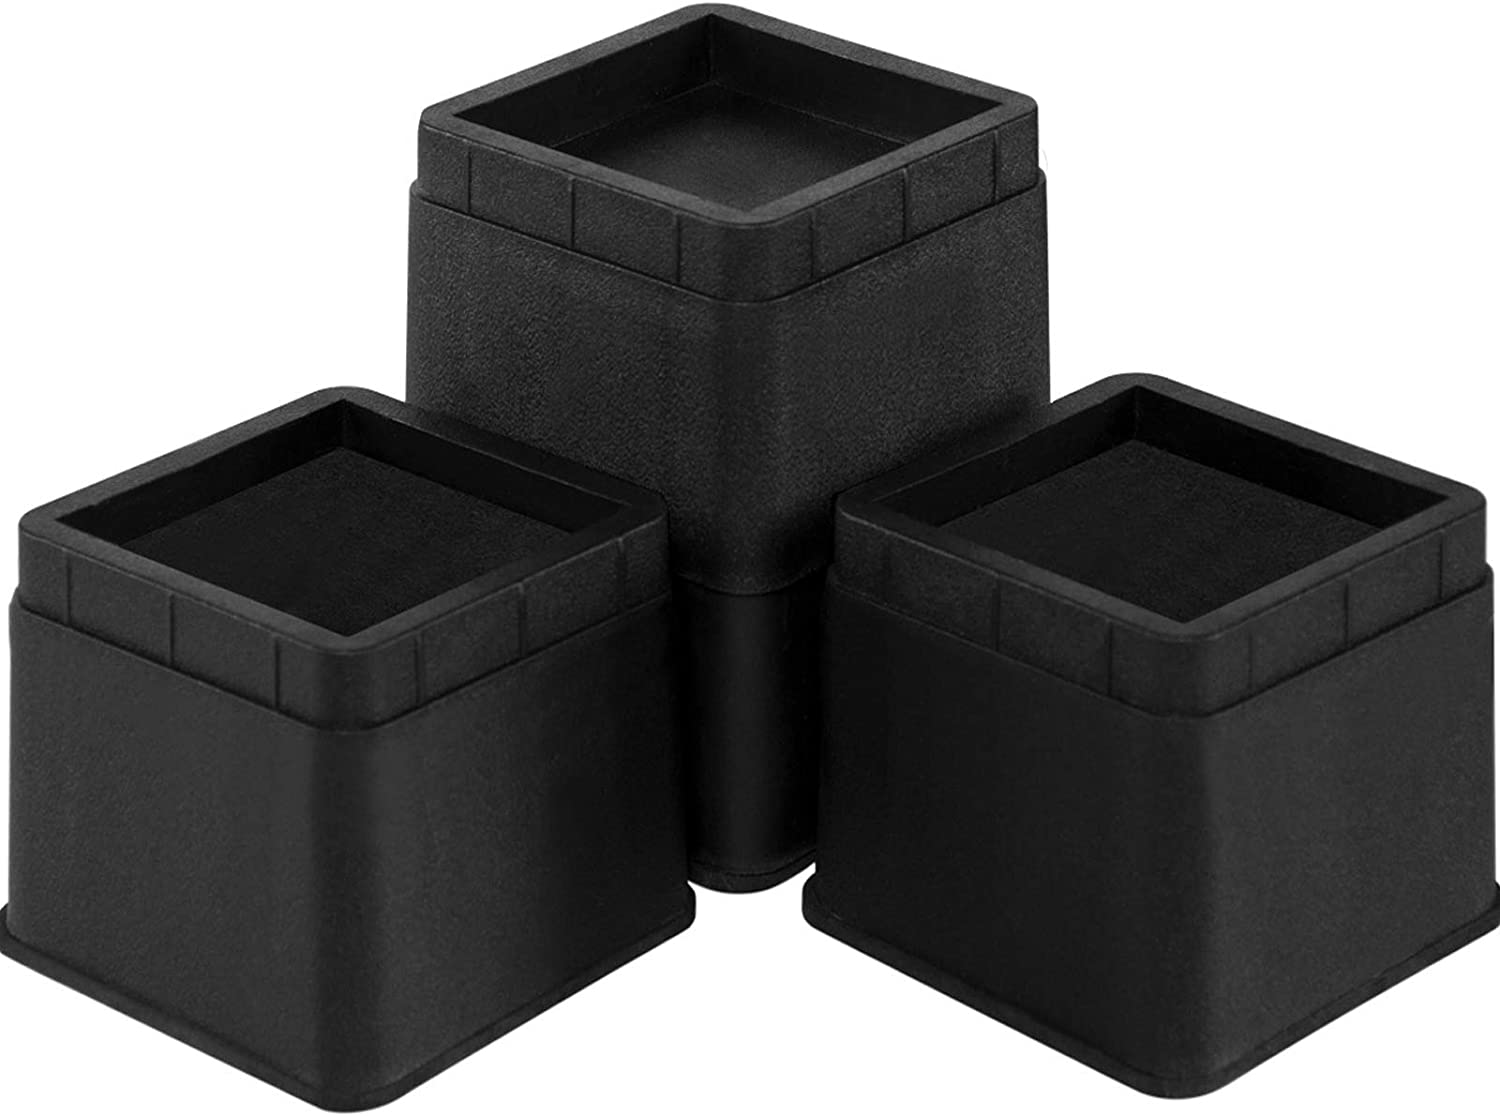 Joyclub Stackable Bed Risers Heavy Duty Furniture Risers for Sofa Table Couch Lift Height of 3 or 6 Inches (4 Pack Black)